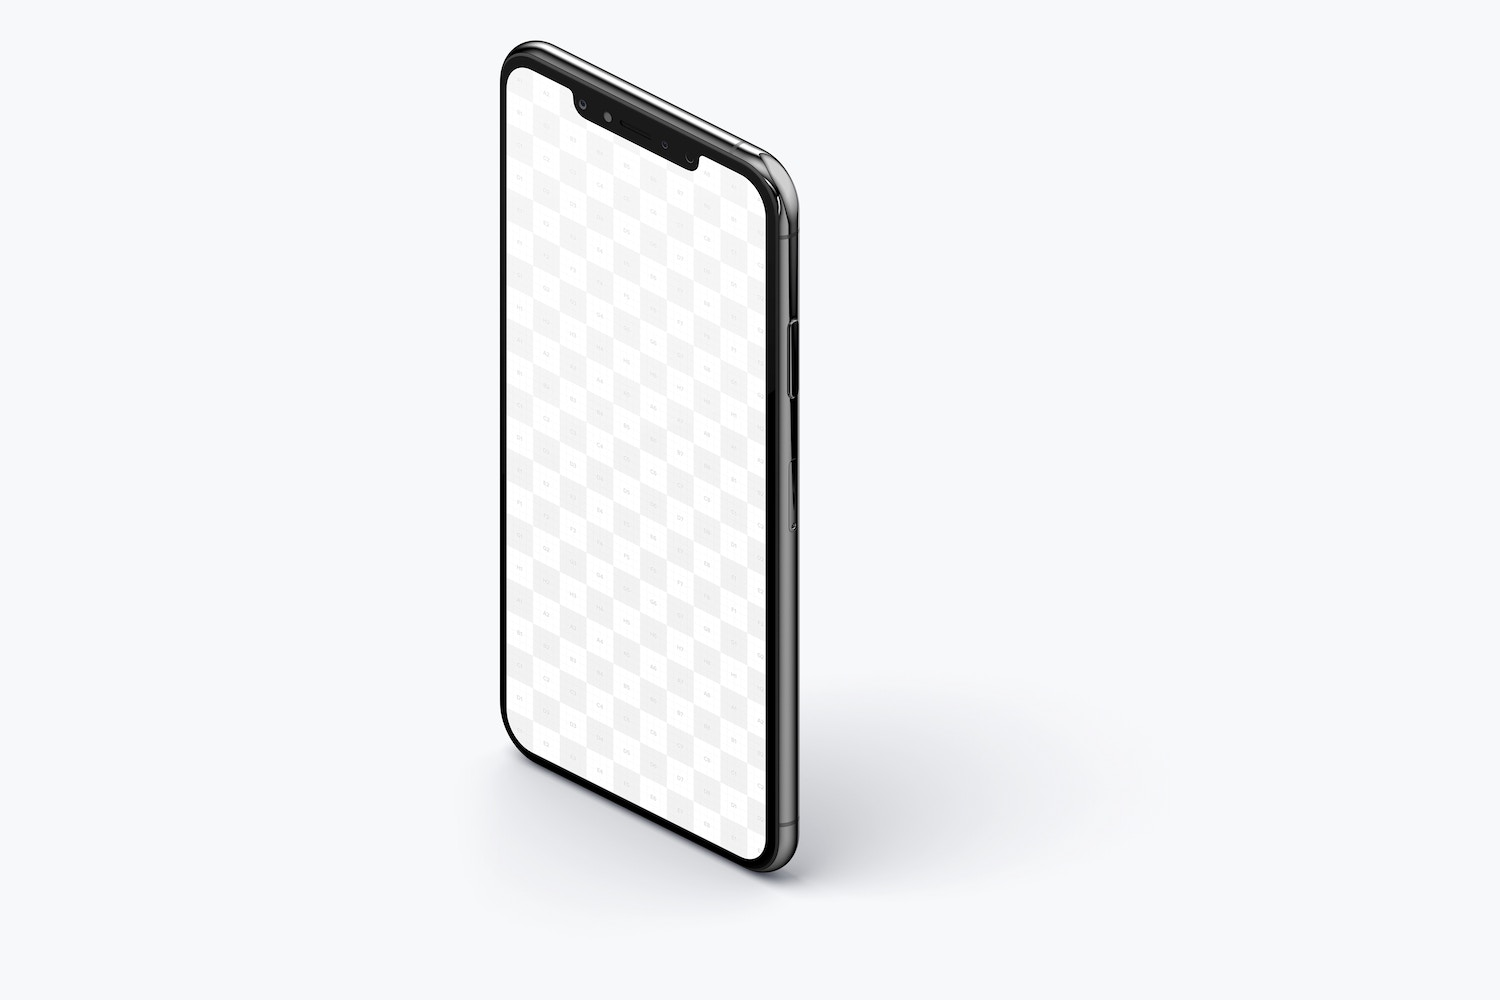 iPhone XS Max Mockup, Isometric Left View 02 (2) by Original Mockups on Original Mockups